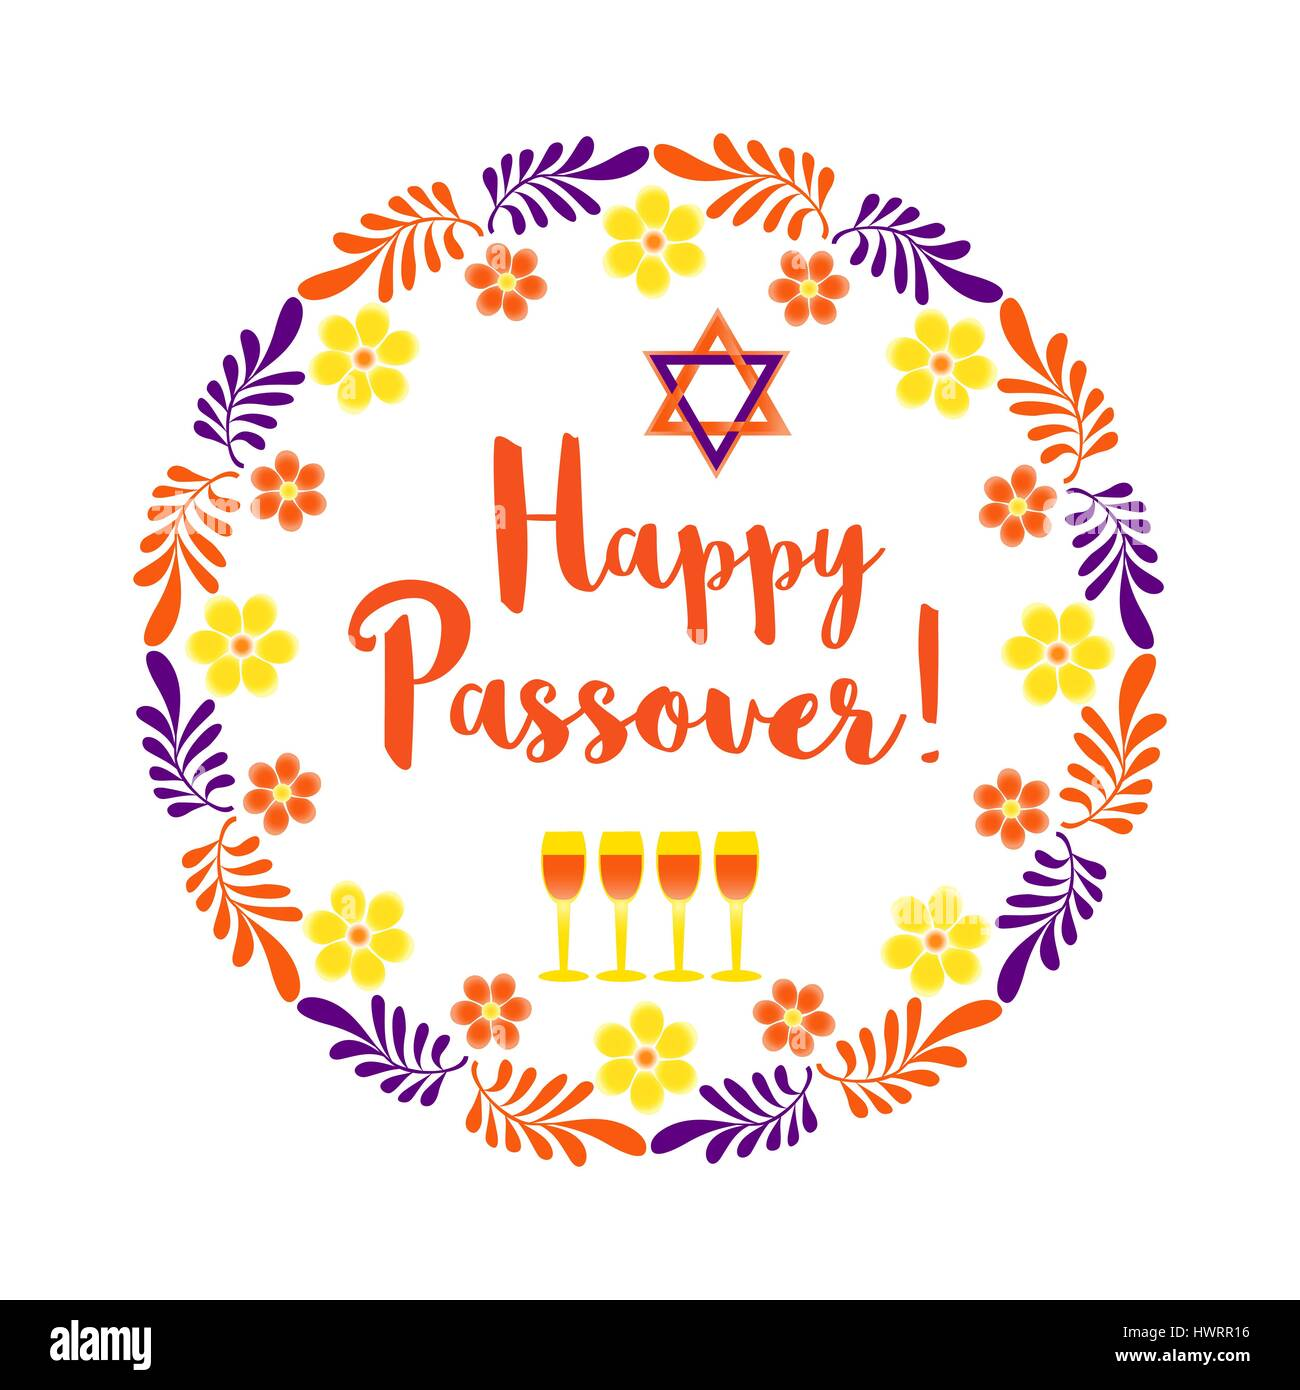 happy passover card stock vector art & illustration, vector image